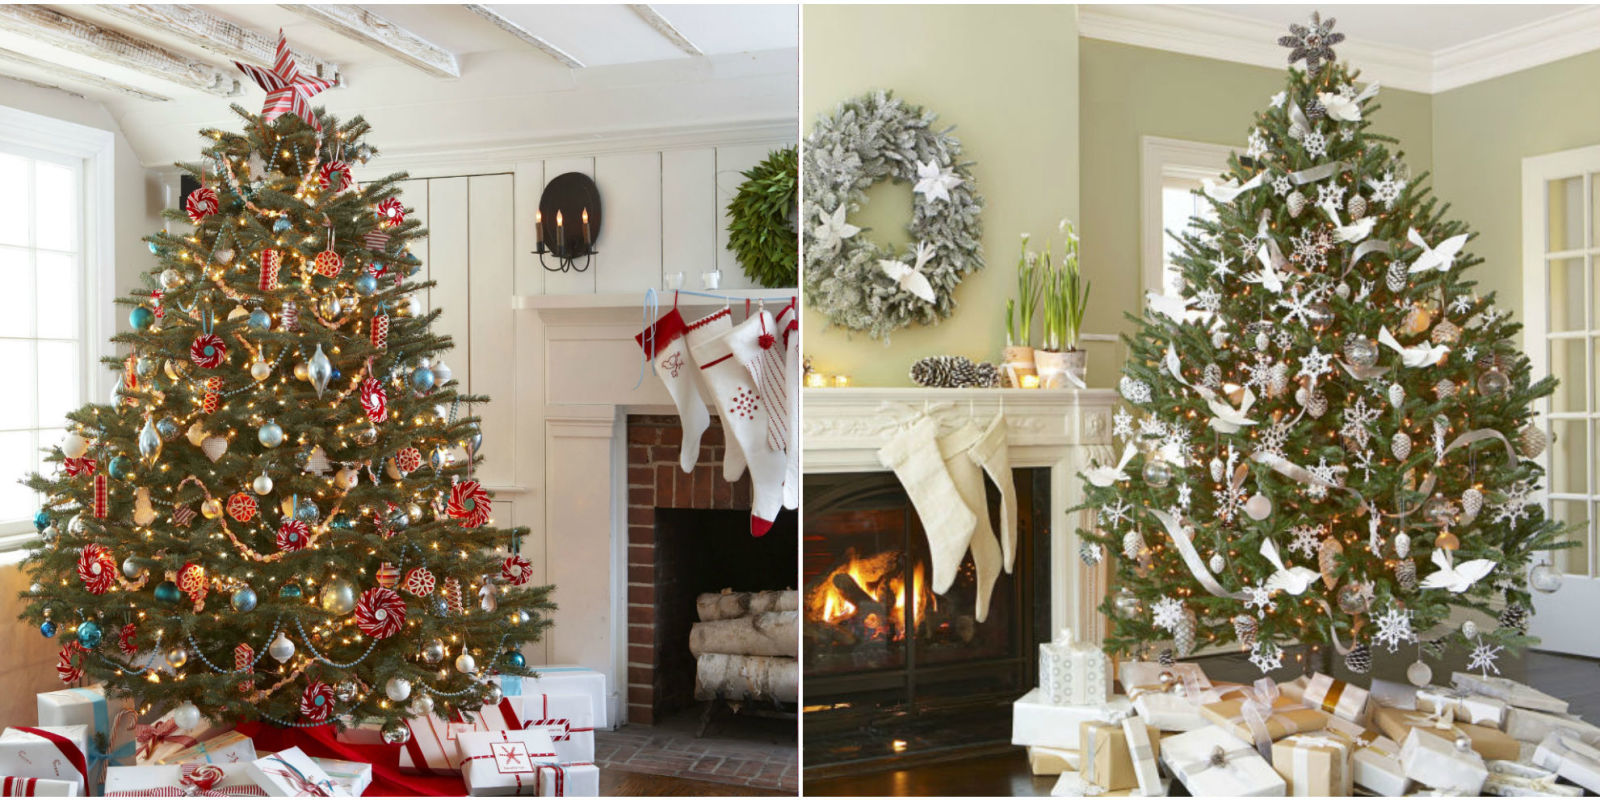 25 Decorated Christmas Tree Ideas Pictures Of Christmas